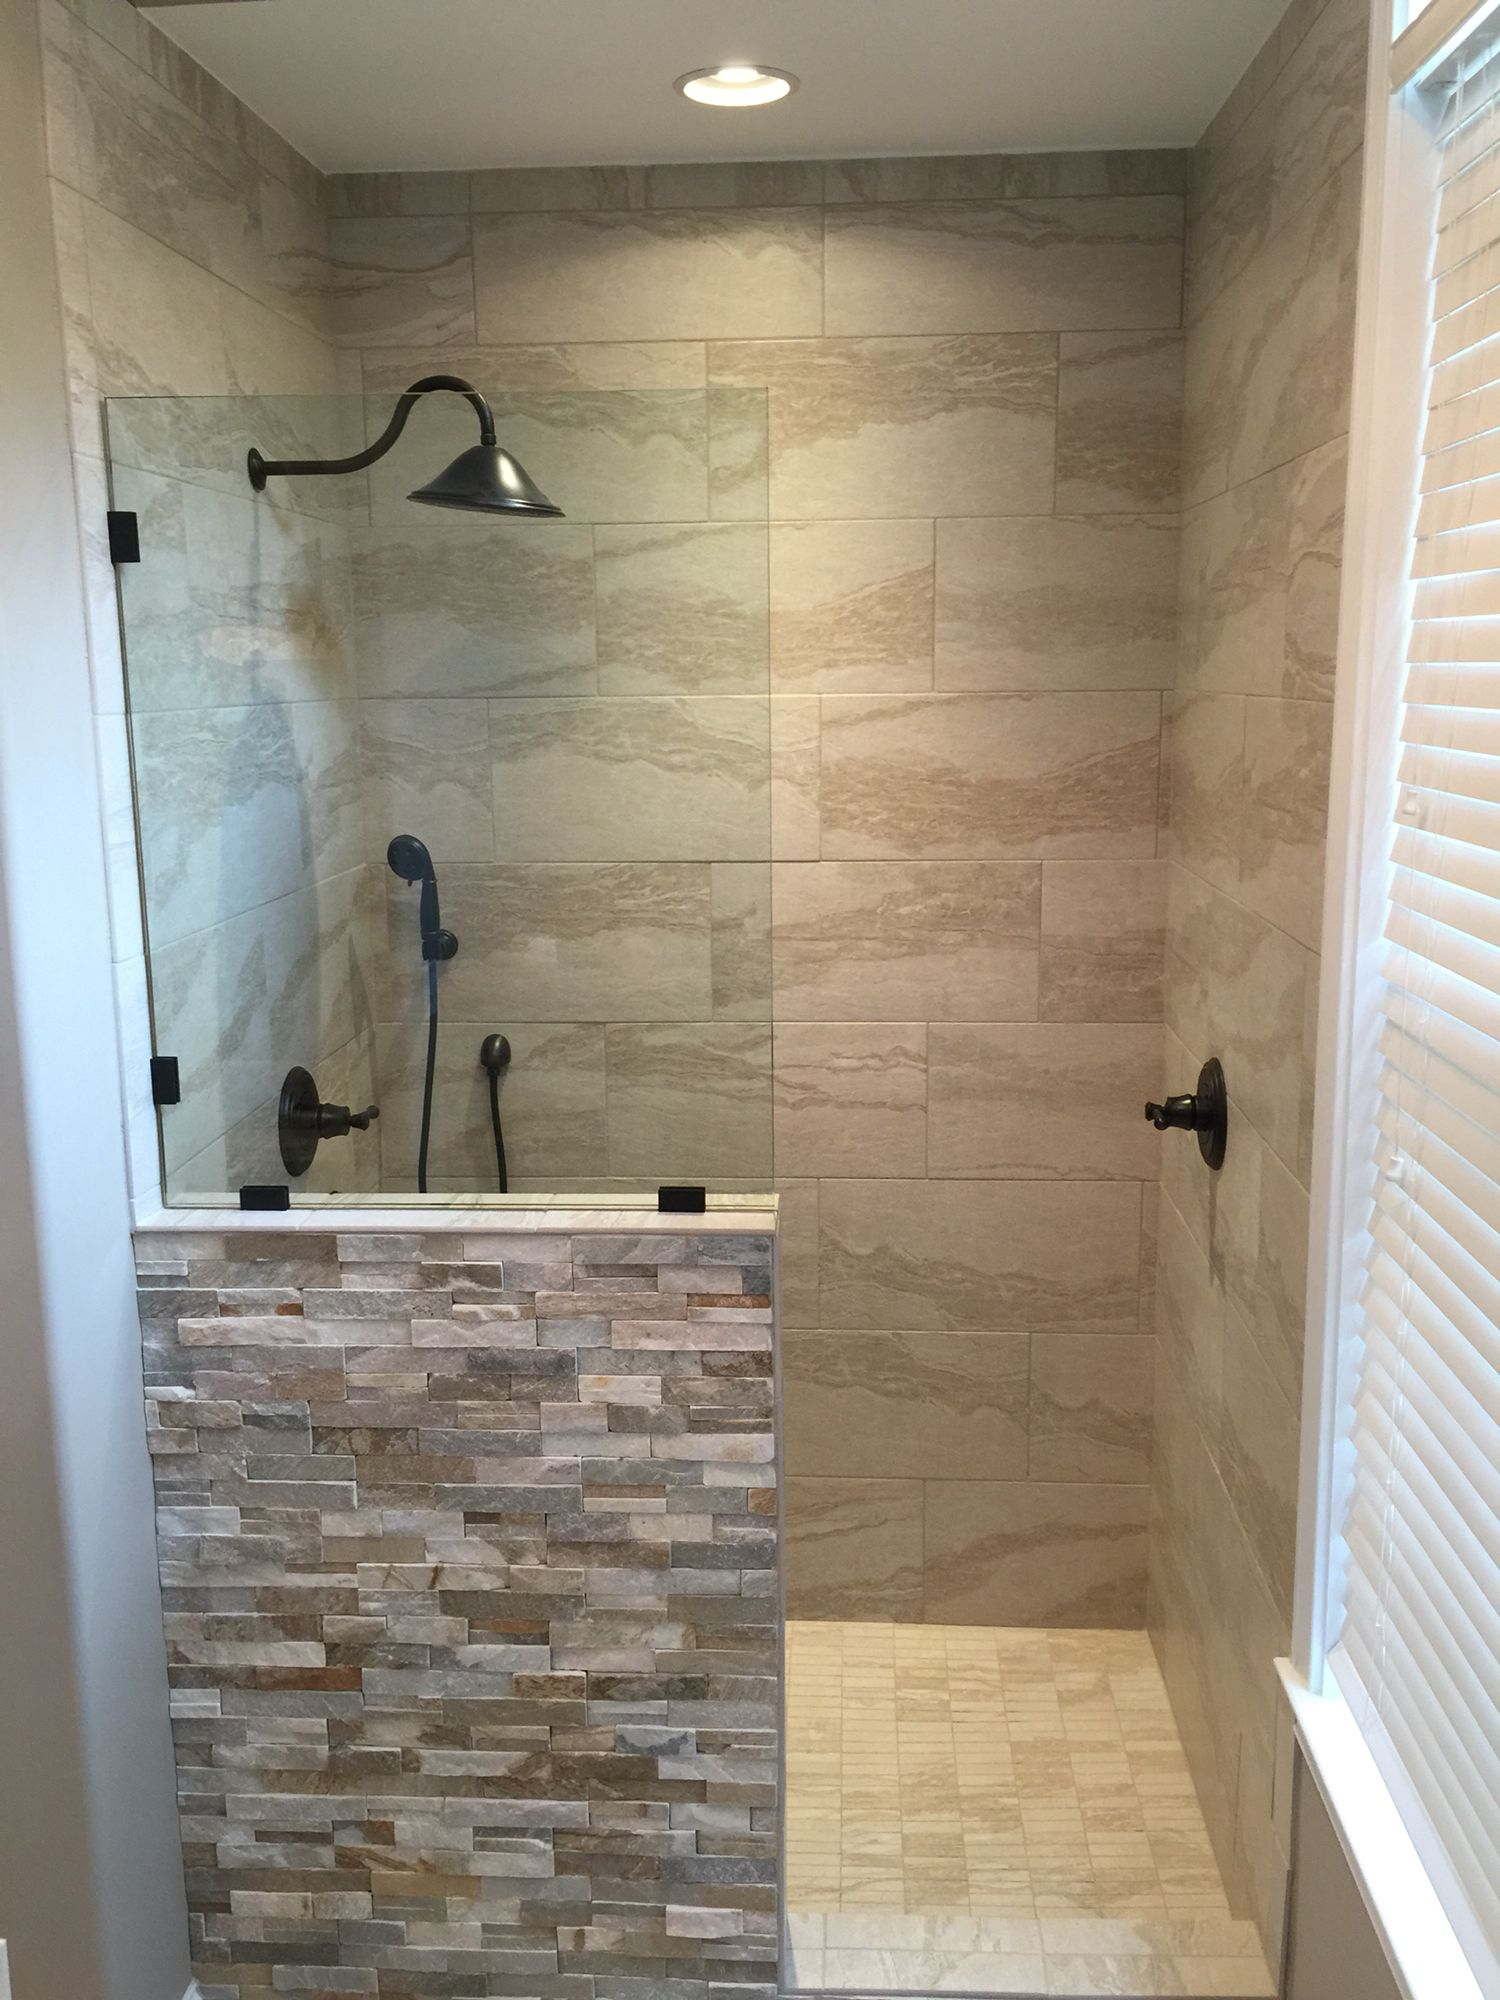 new shower replaced the old jacuzzi tub | my bathroom | pinterest